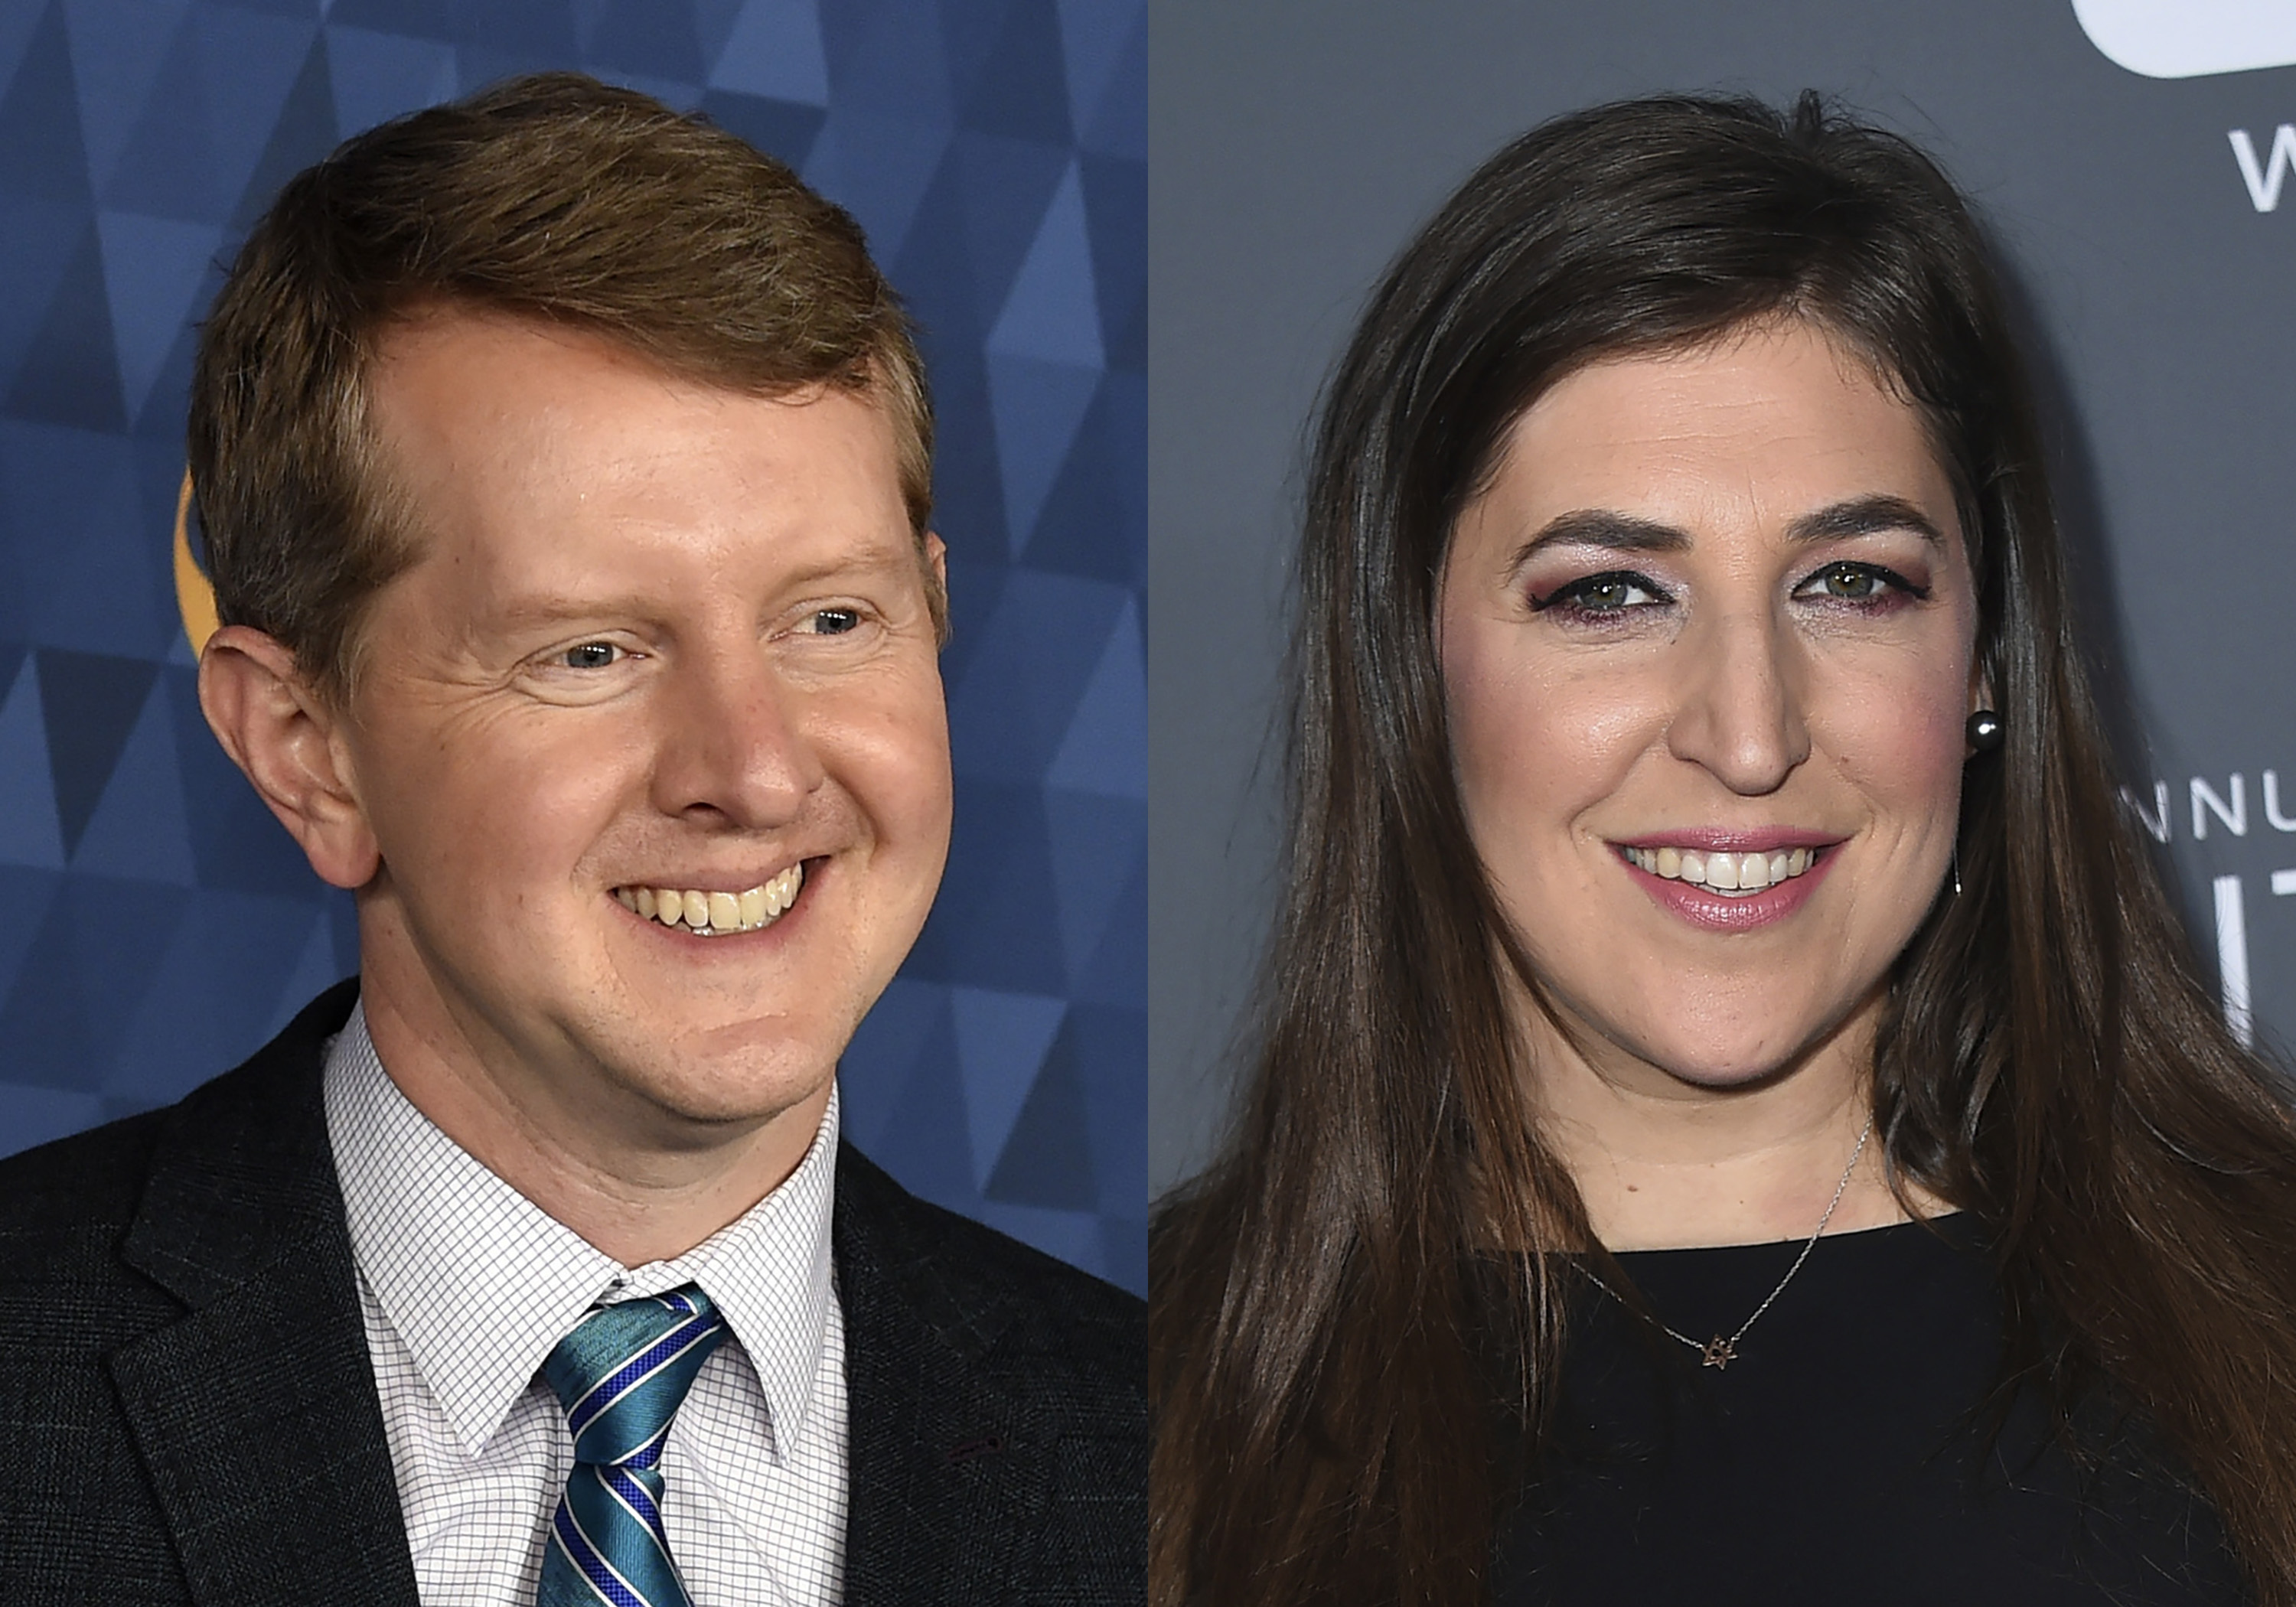 """Ken Jennings (pictured in 2020) and Mayim Bialik (pictured in 2018) will split co-hosting duties on """"Jeopardy!"""" following the departure of Mike Richards."""